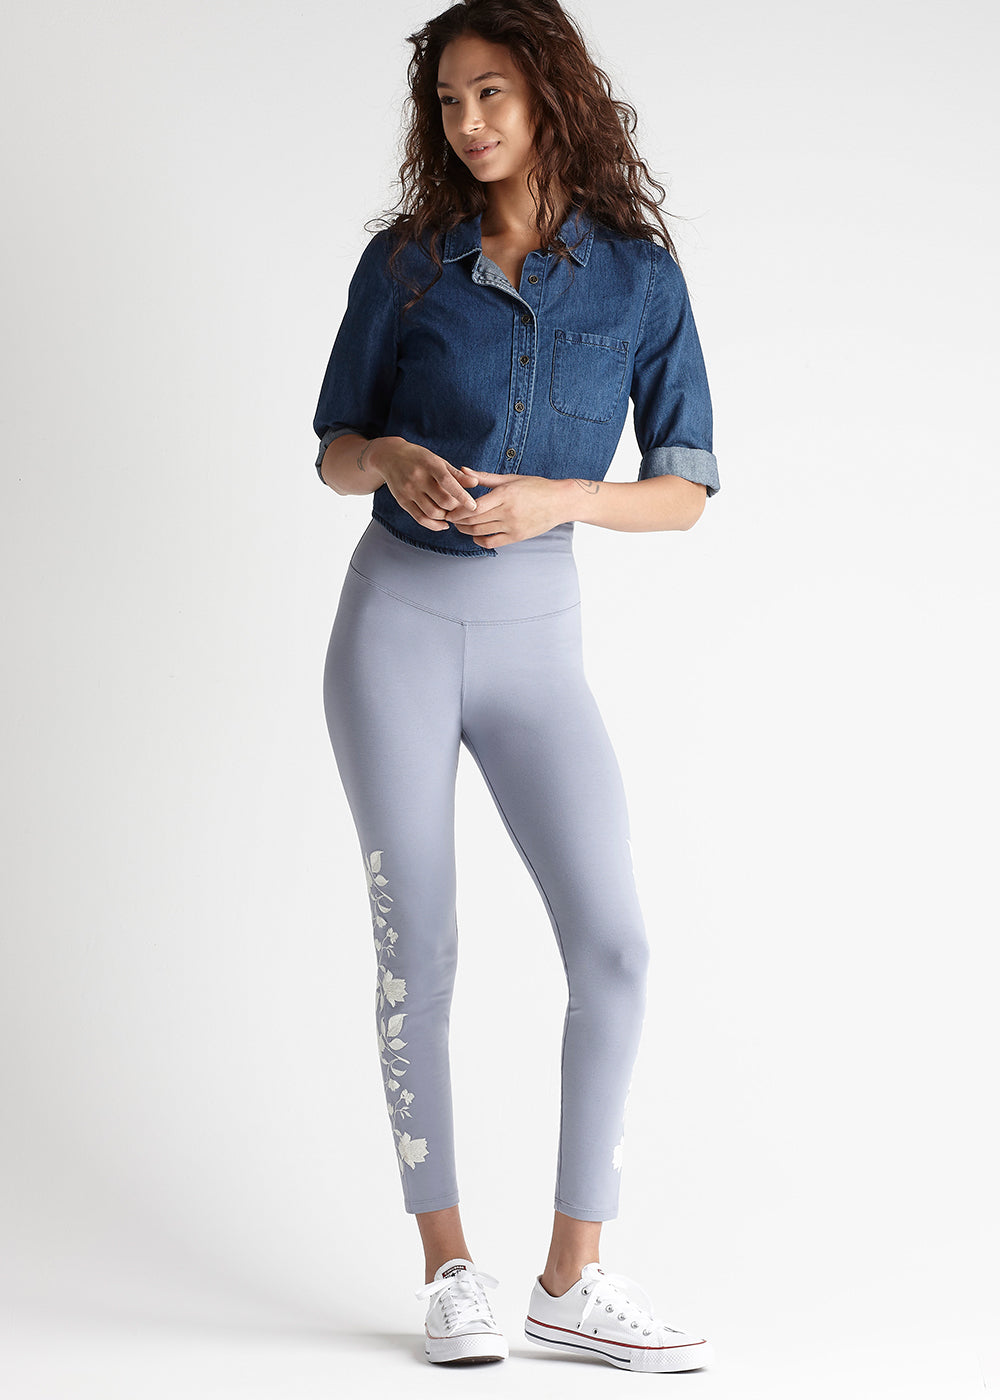 Yummie Cotton Stretch Shaping Legging With Floral Embroidery